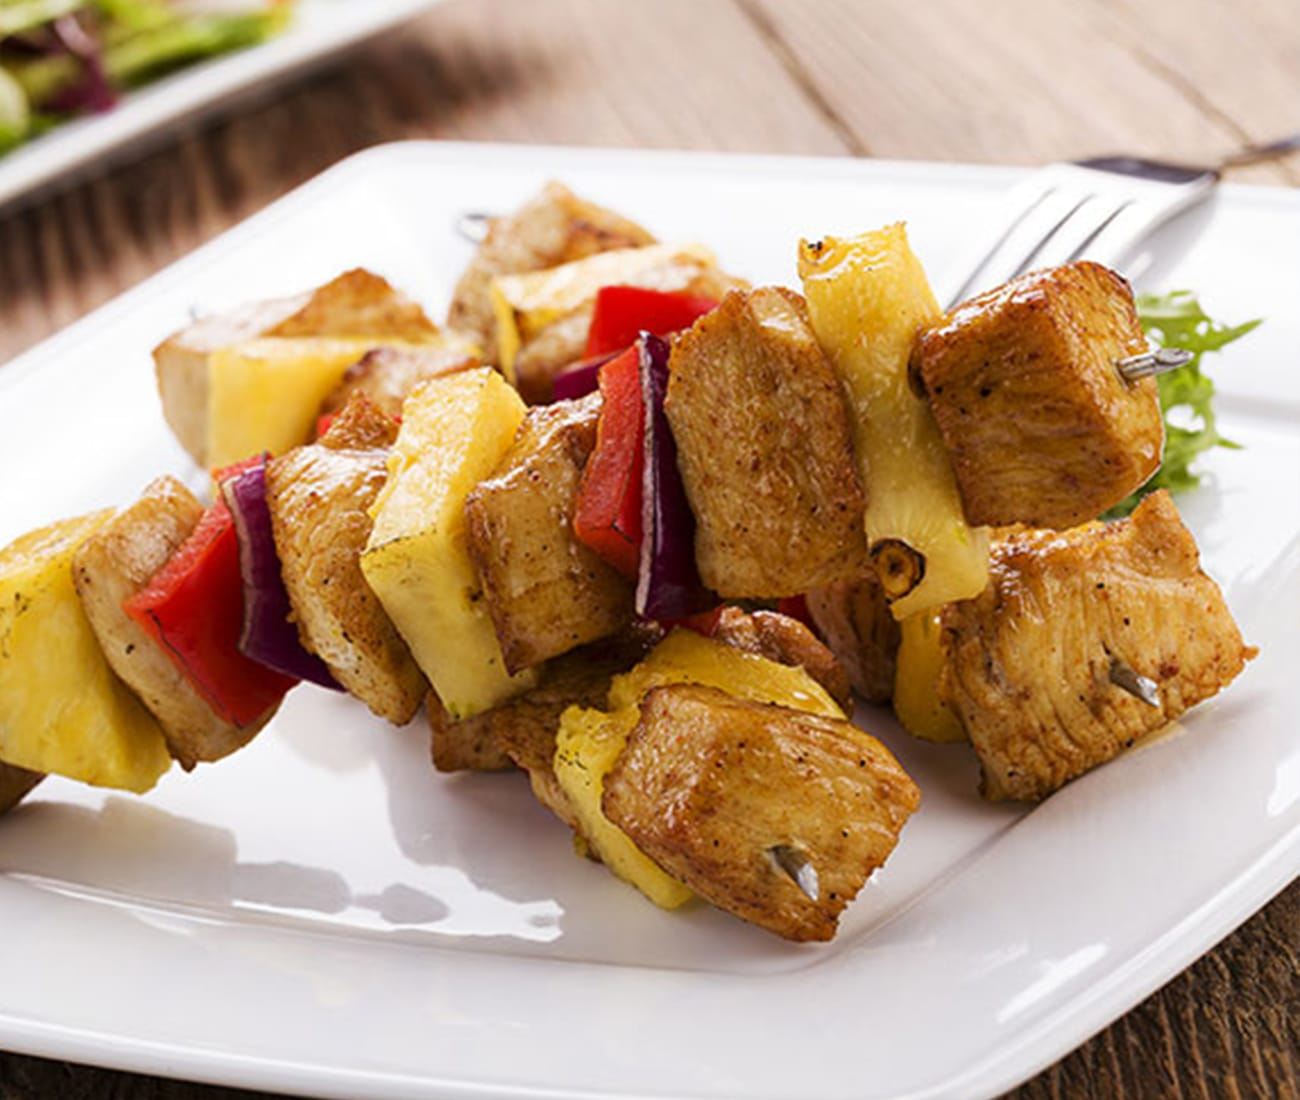 Image for Chicken & Pineapple Skewers